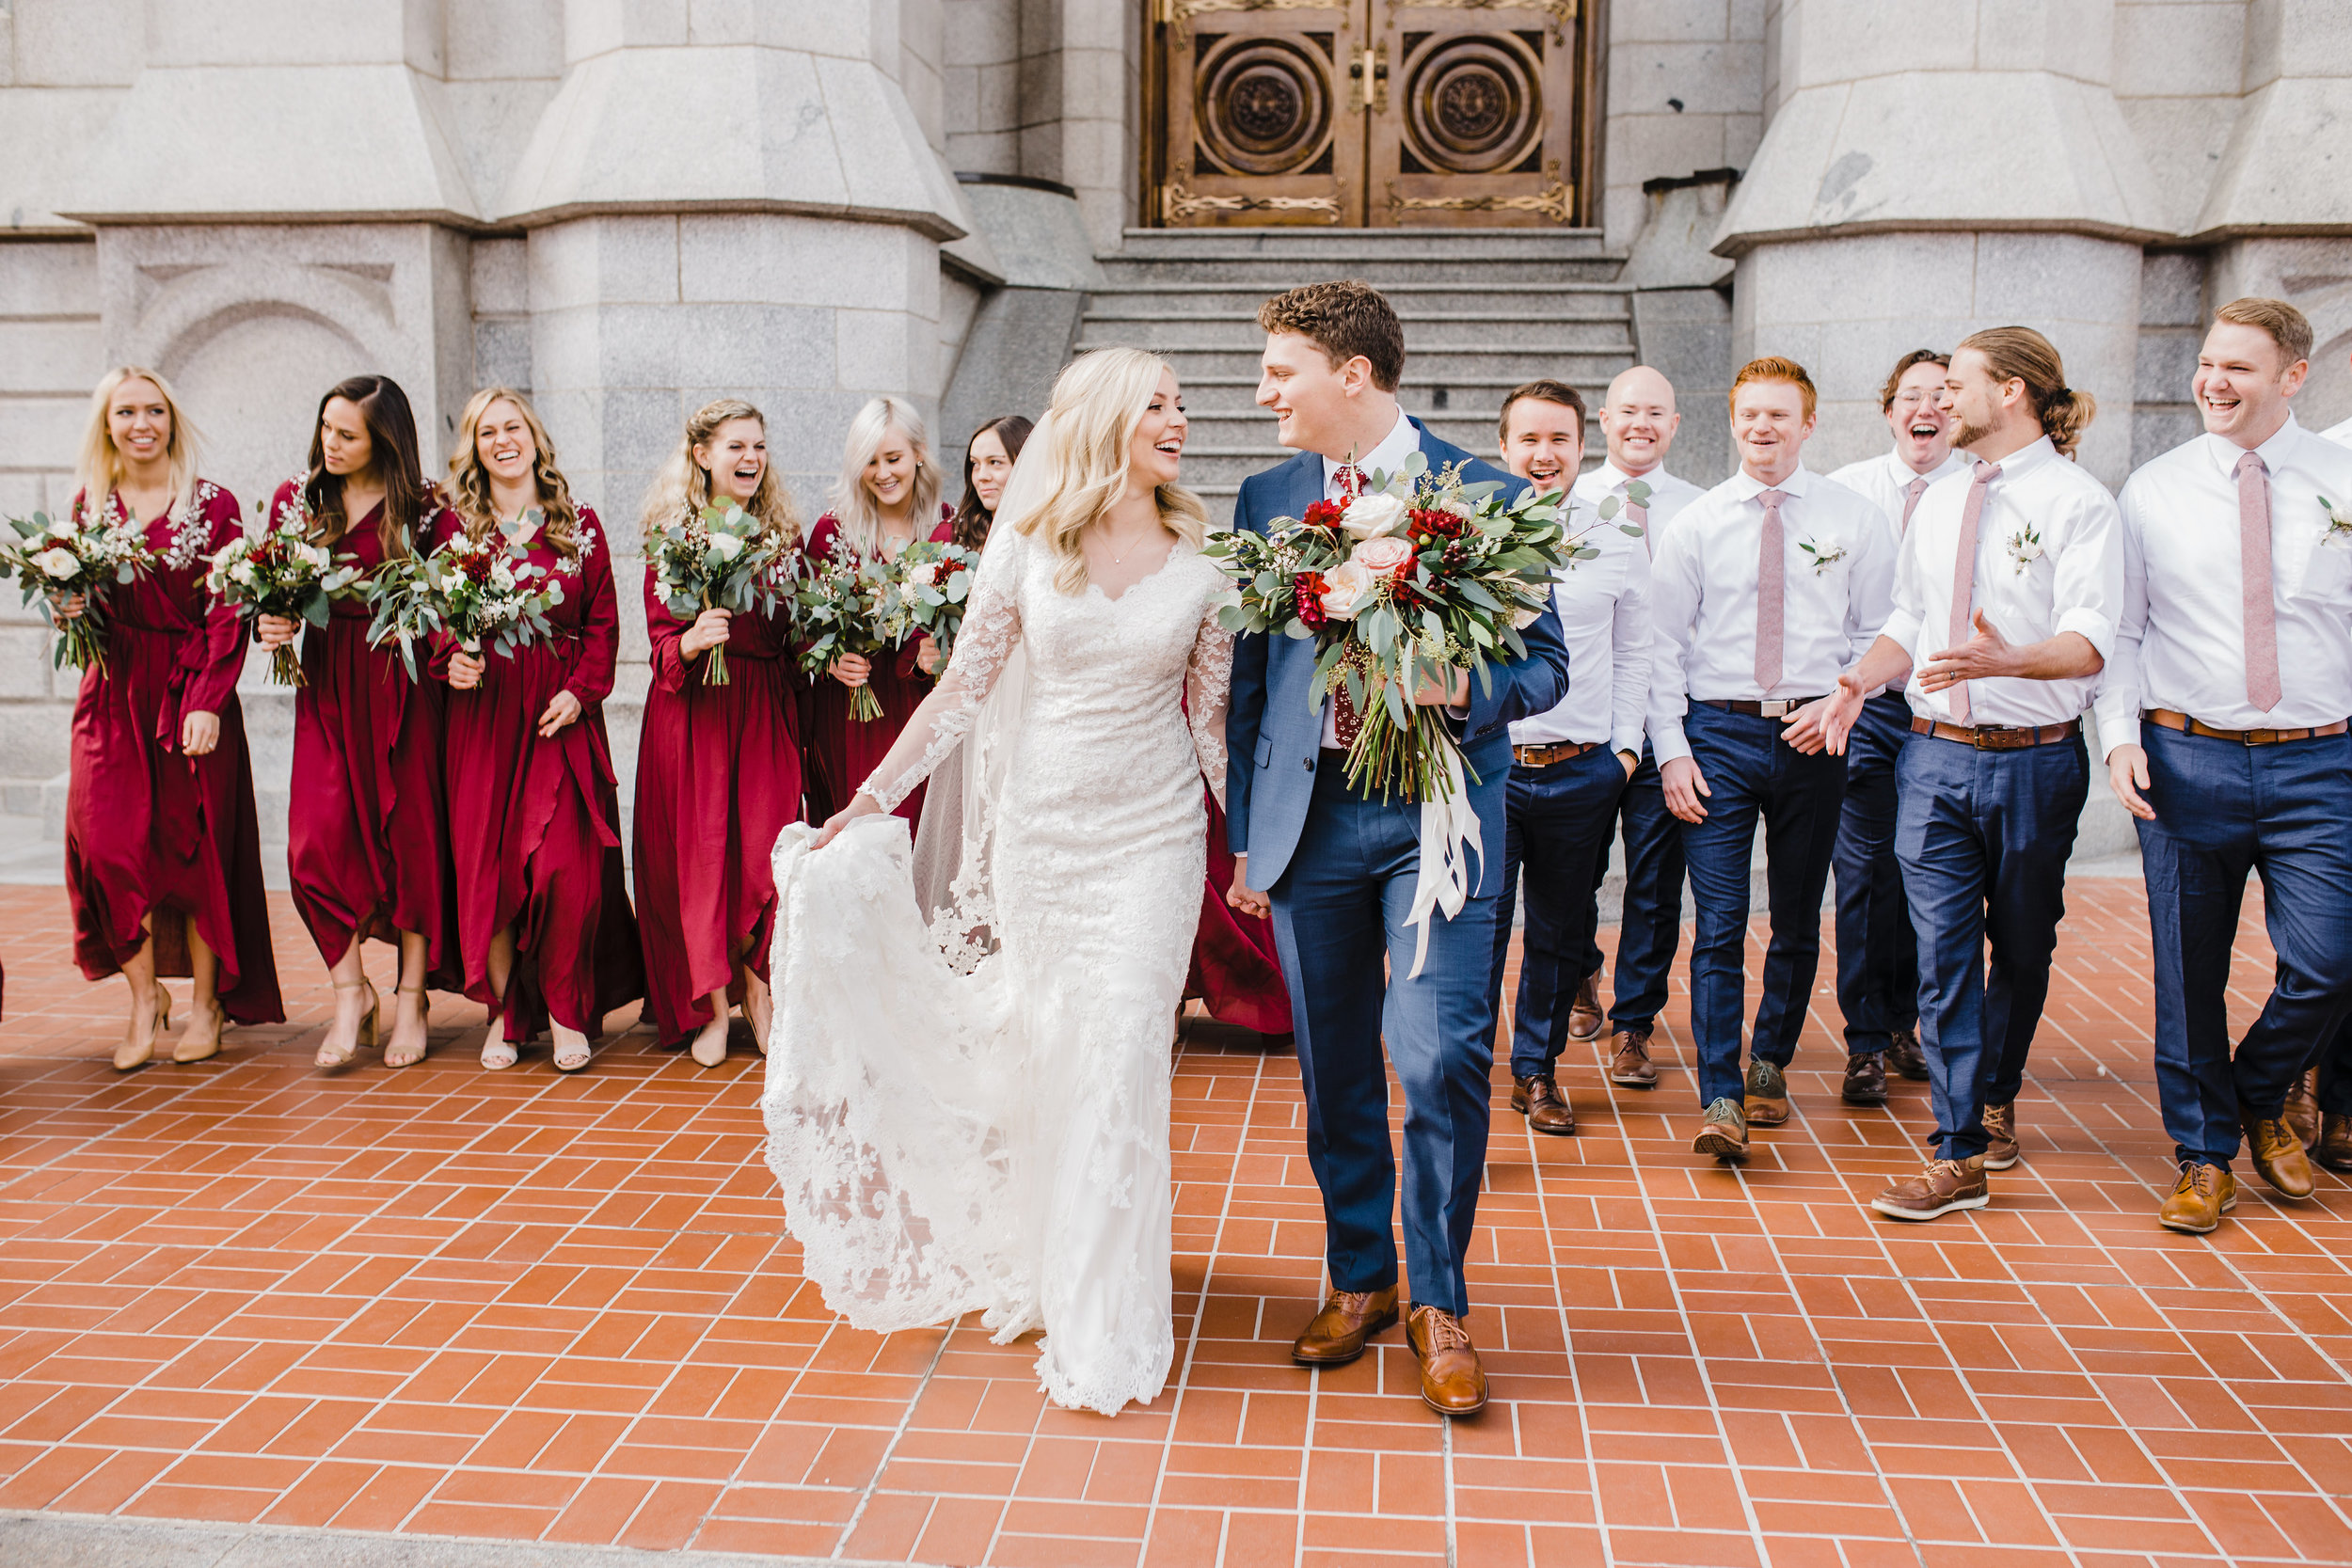 best professional wedding photographer in provo utah red bridesmaids dresses wedding exit holding hands laughter bohemian wedding bouquets nude heels